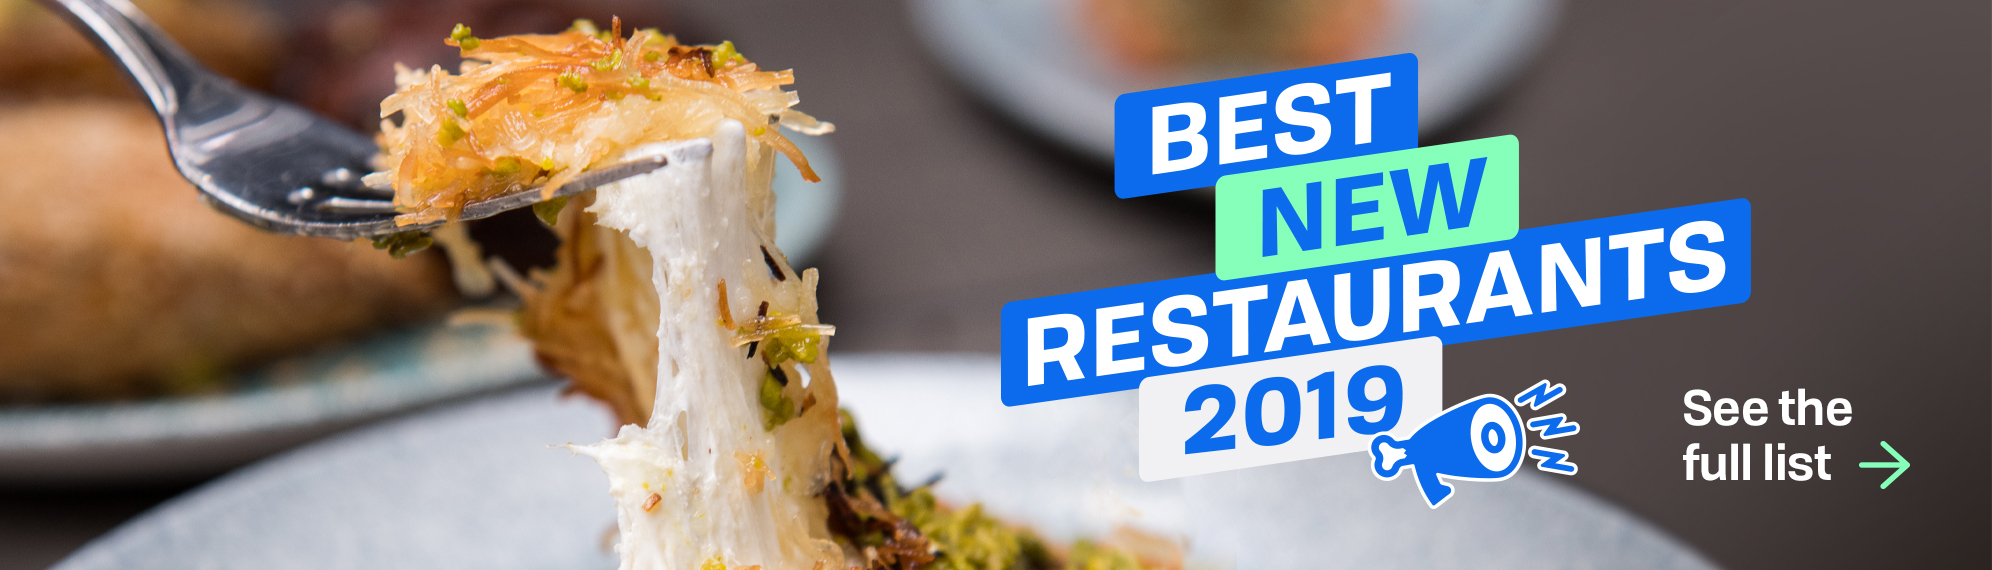 See the full list of Philadelphia's Best Restaurants Of 2019.